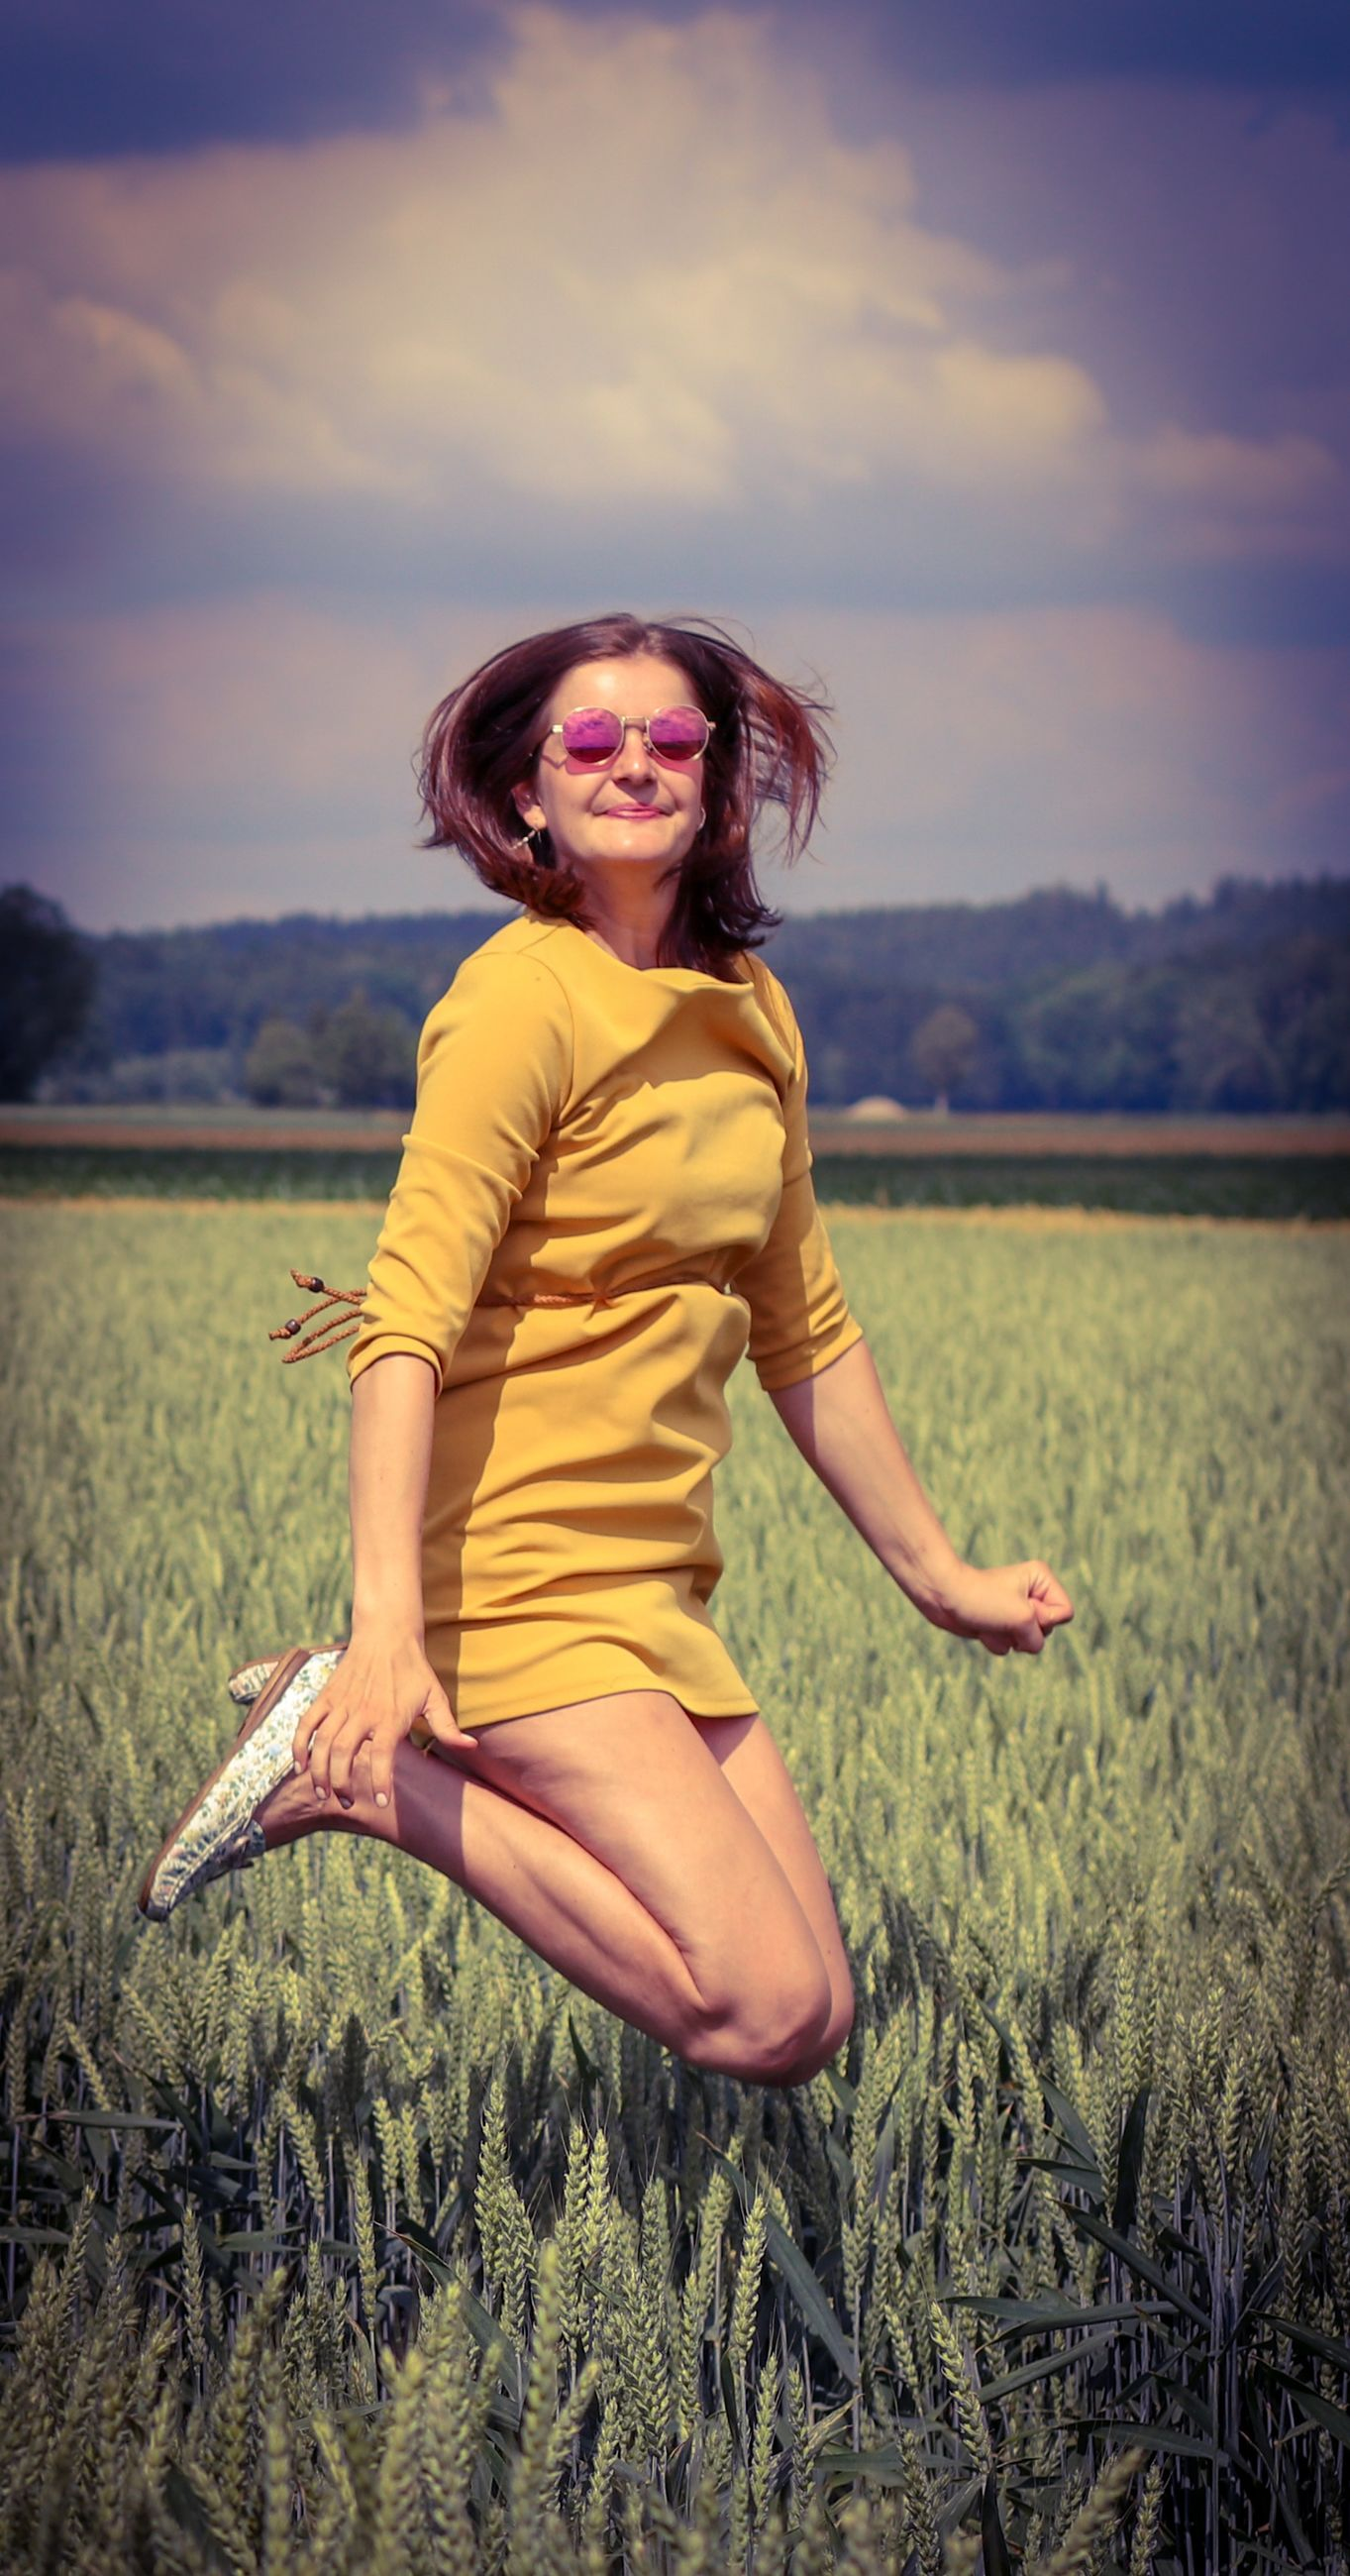 one person, field, land, sky, leisure activity, women, plant, happiness, beauty in nature, clothing, nature, smiling, cloud - sky, real people, lifestyles, grass, fashion, full length, outdoors, freedom